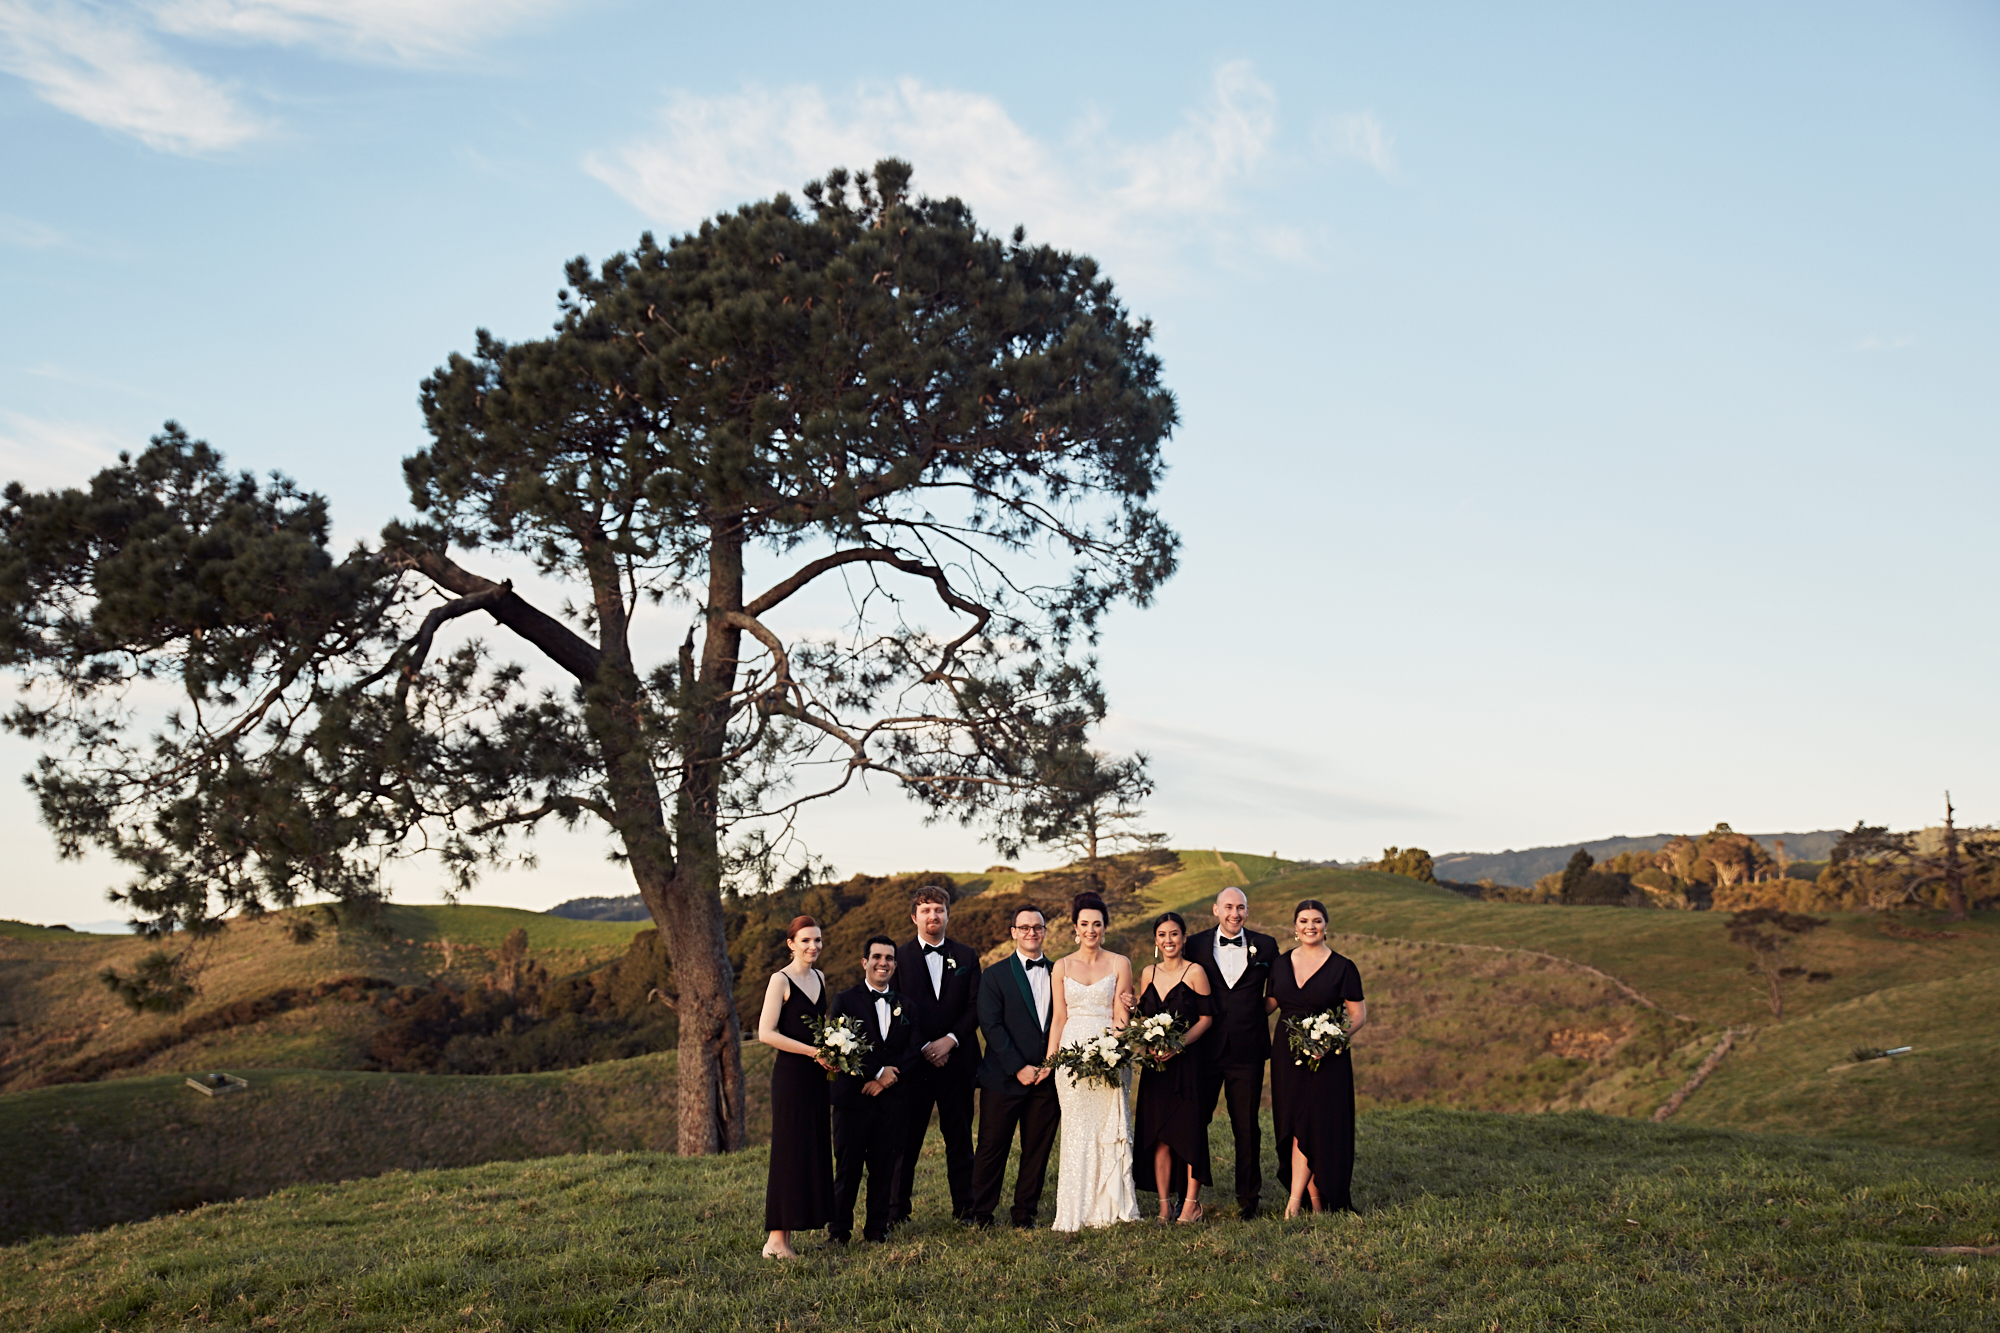 Bridal party in field